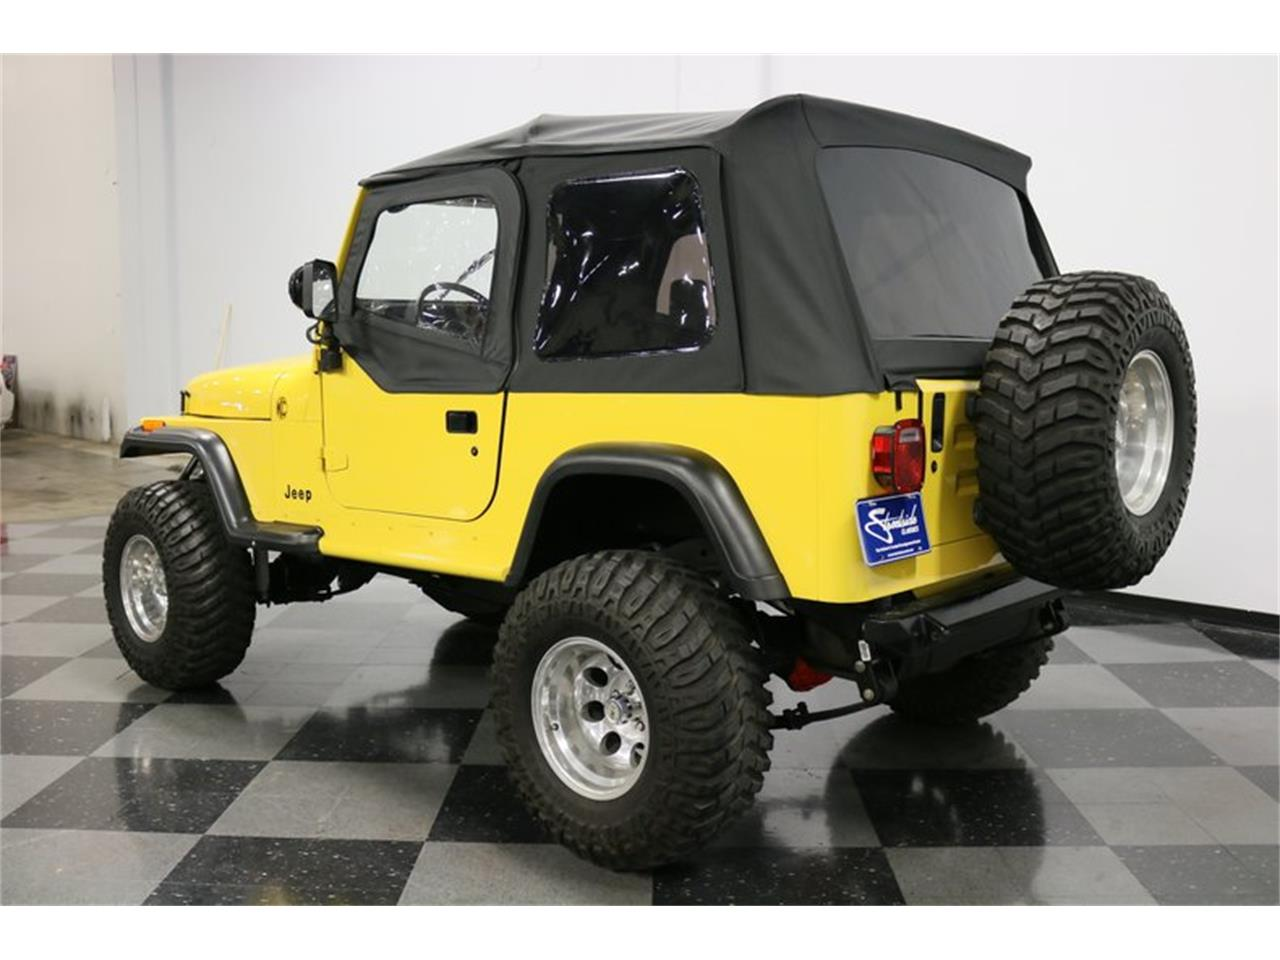 Large Picture of '93 Jeep Wrangler located in Texas - $21,995.00 Offered by Streetside Classics - Dallas / Fort Worth - P701